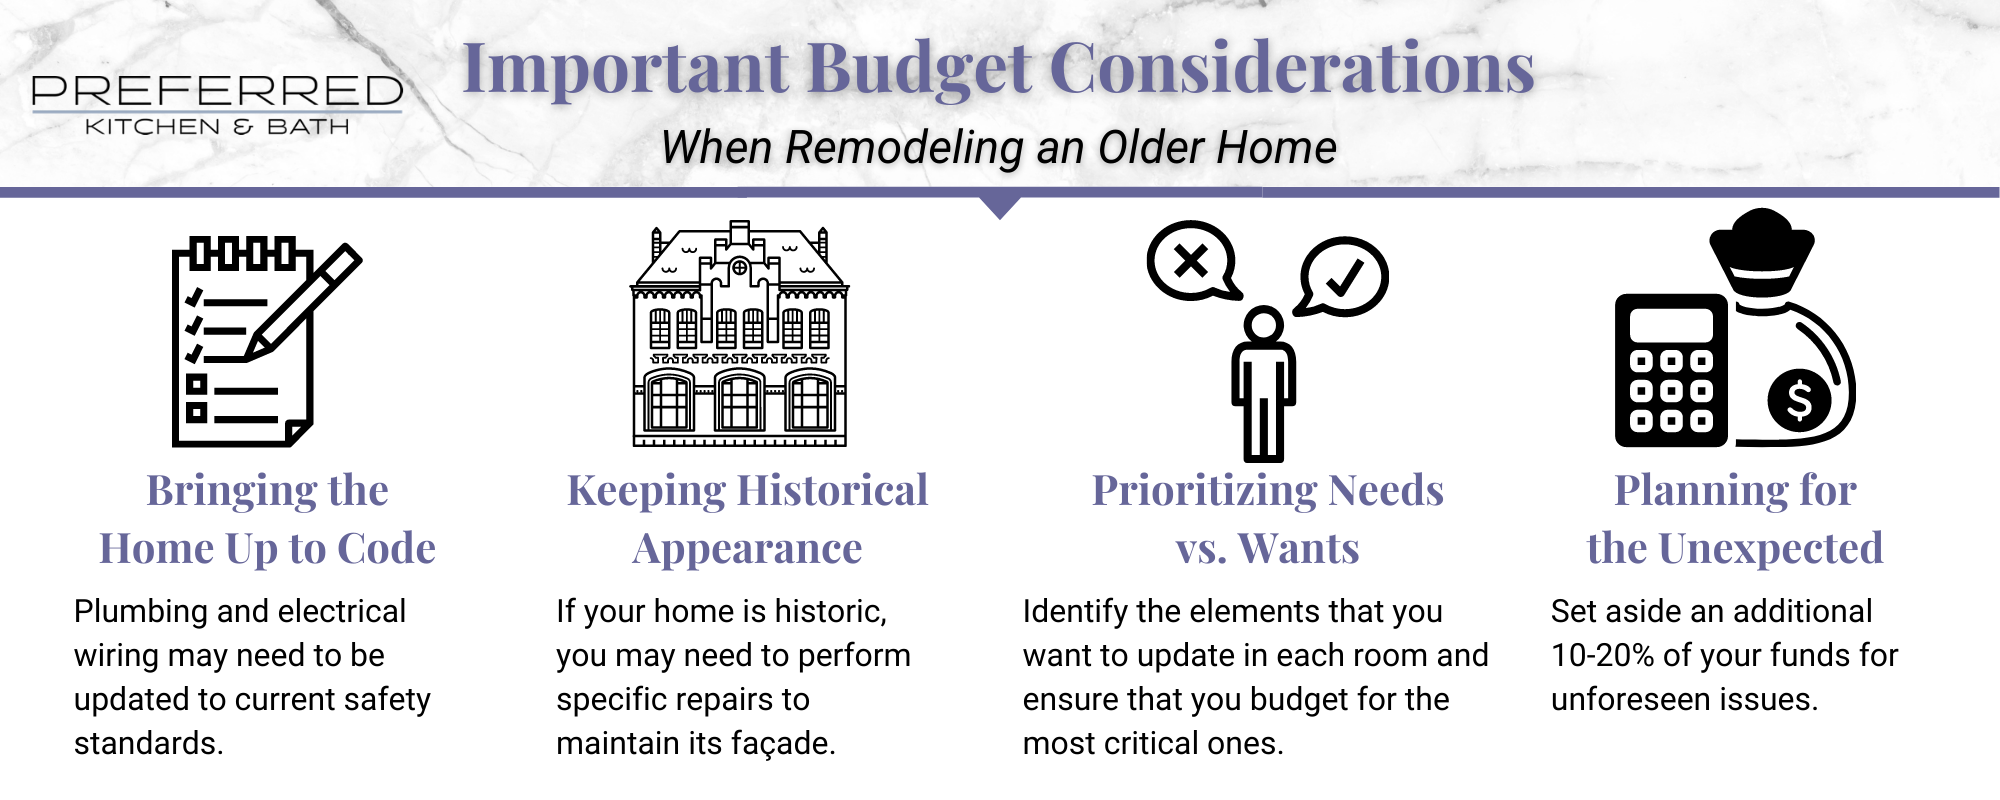 Budget considerations when remodeling an older home